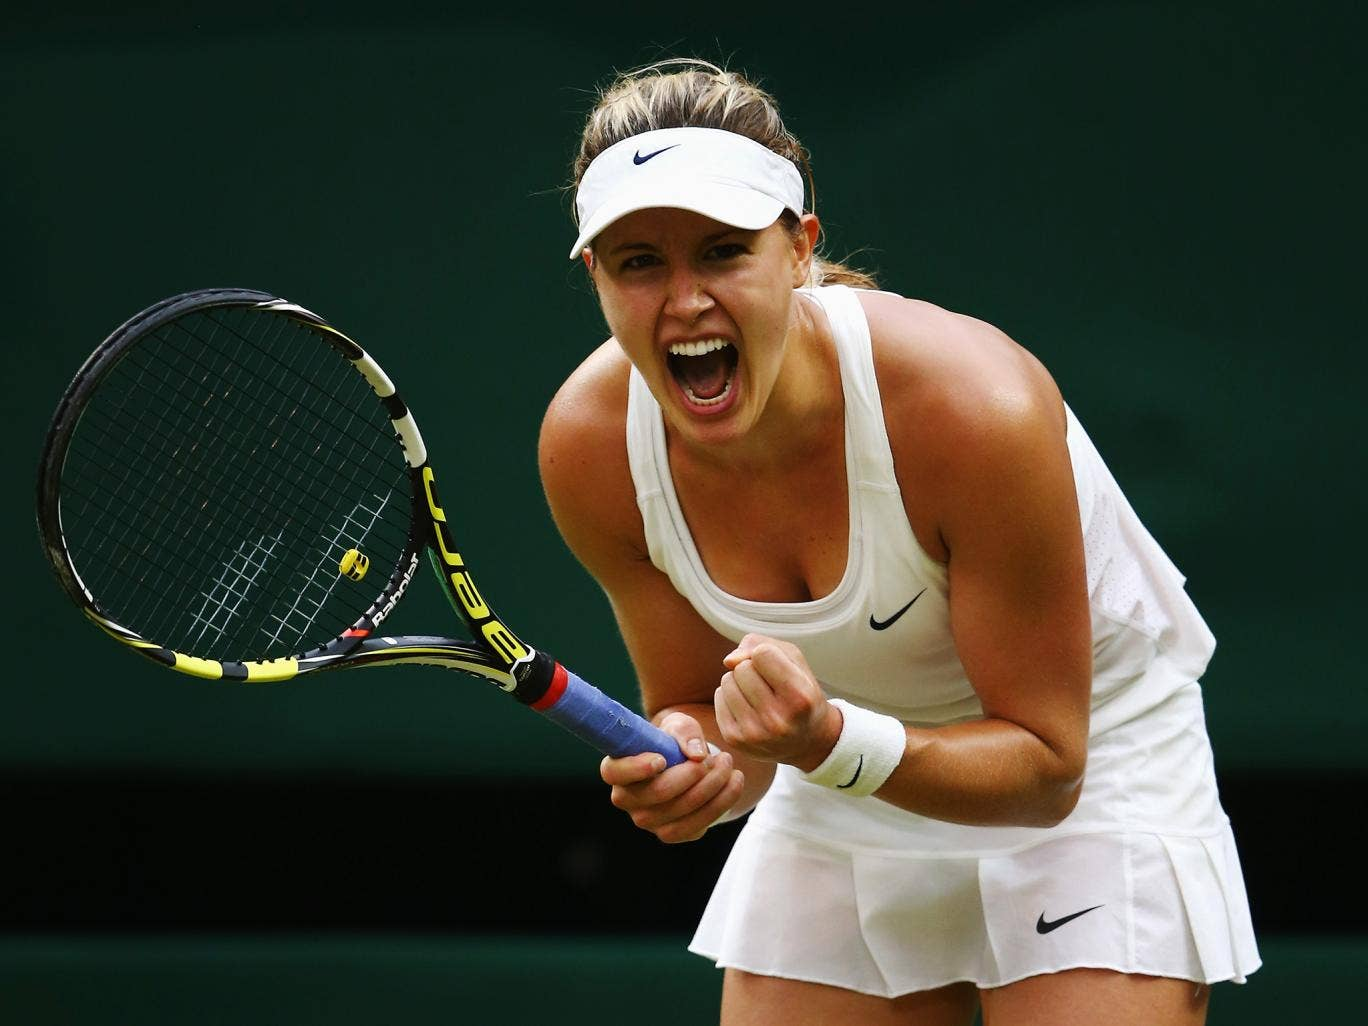 Eugenie Bouchard of Canada celebrates after winning her Ladies' Singles fourth round match against Alize Cornet